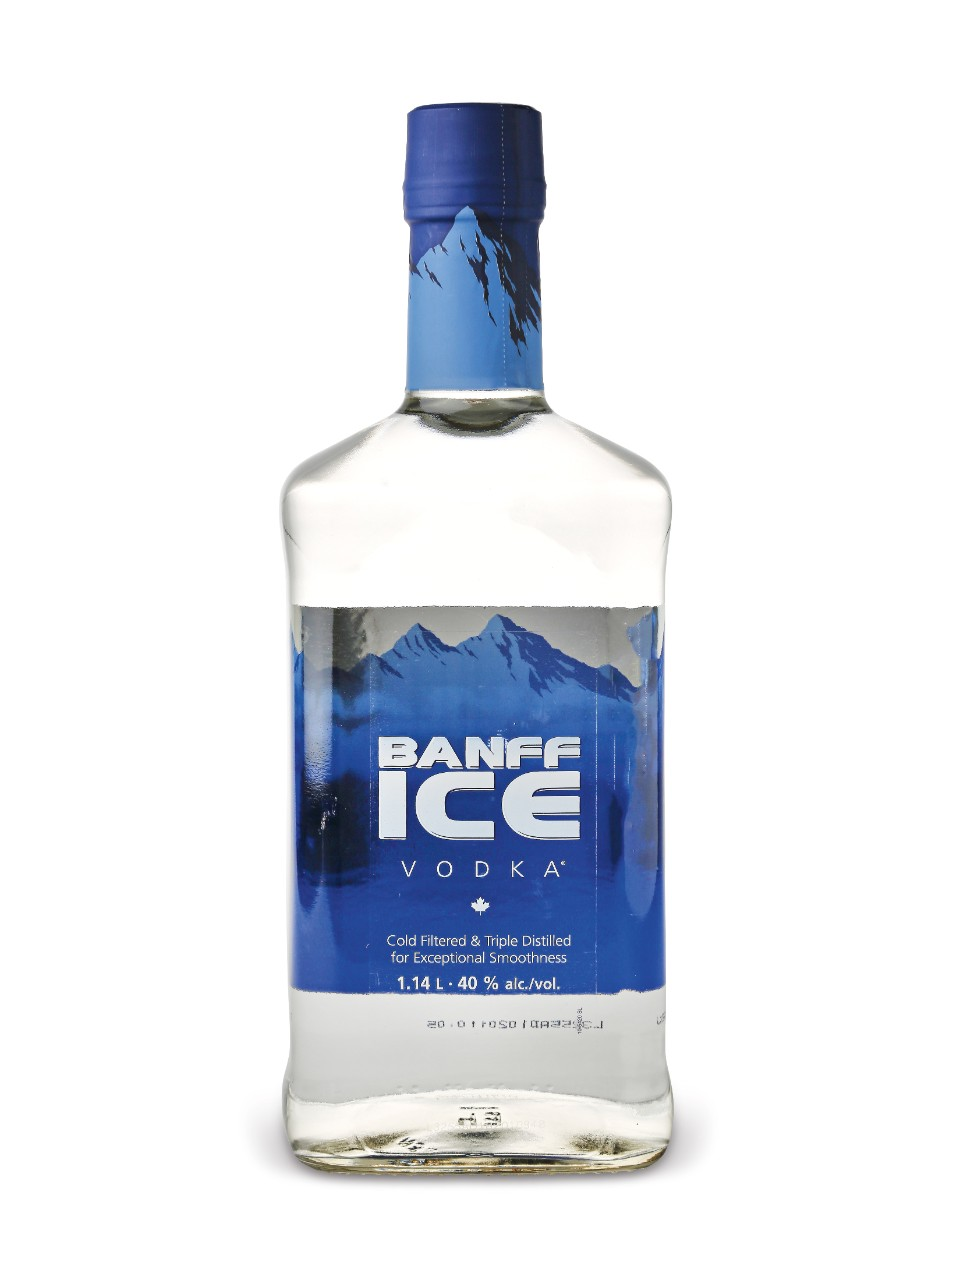 Vodka Banff Ice